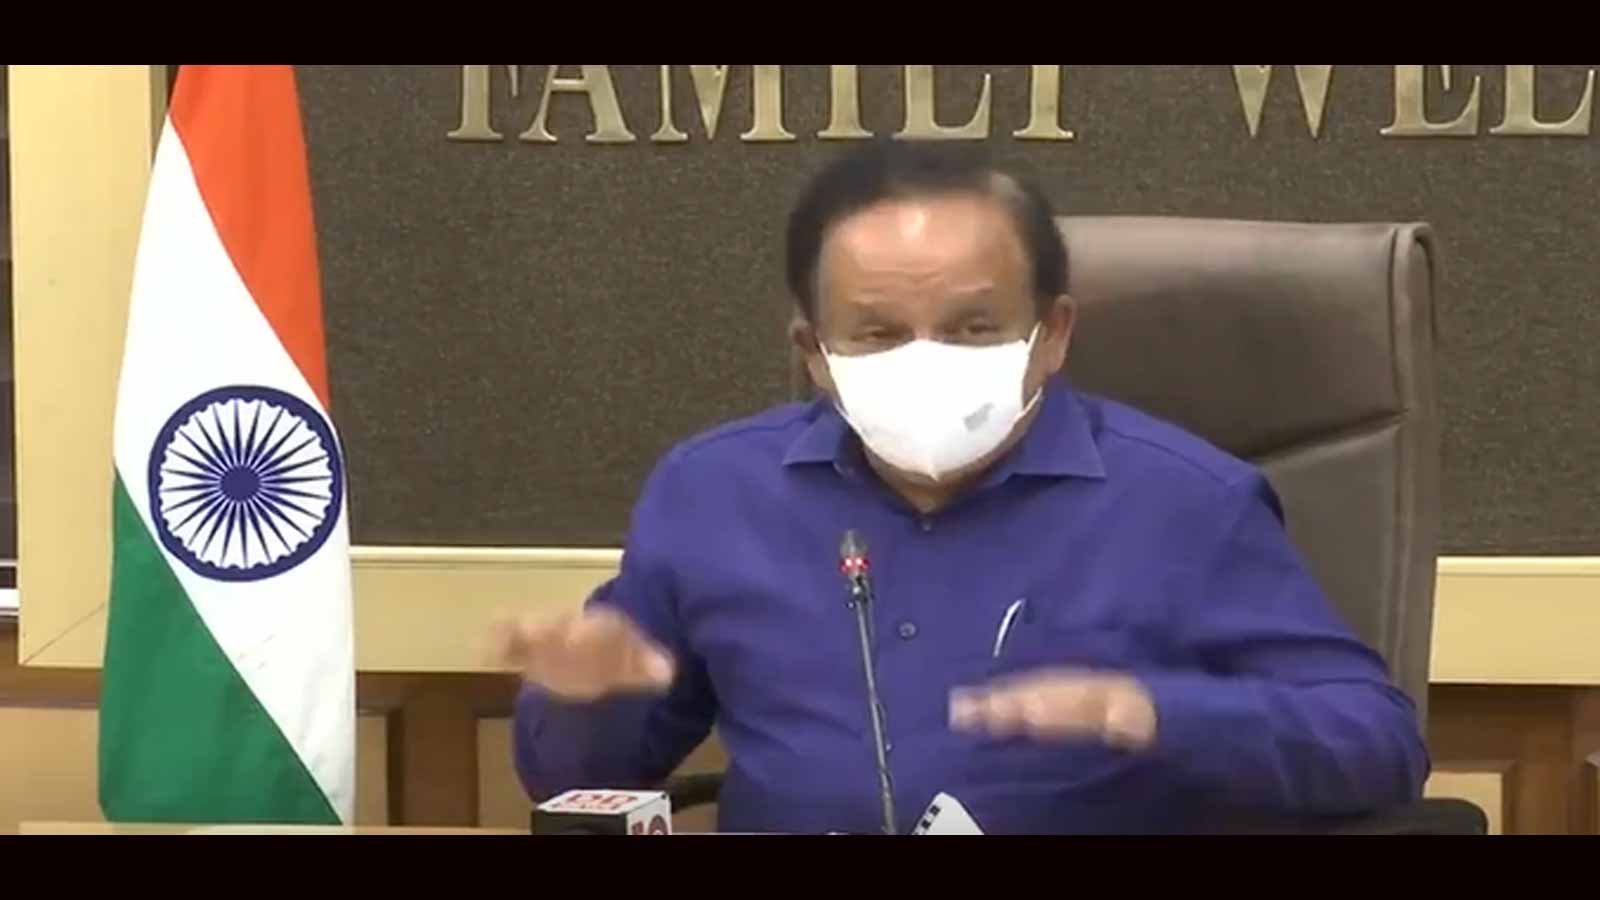 health-minister-dr-harsh-vardhan-briefs-aiims-staff-on-covid-situation